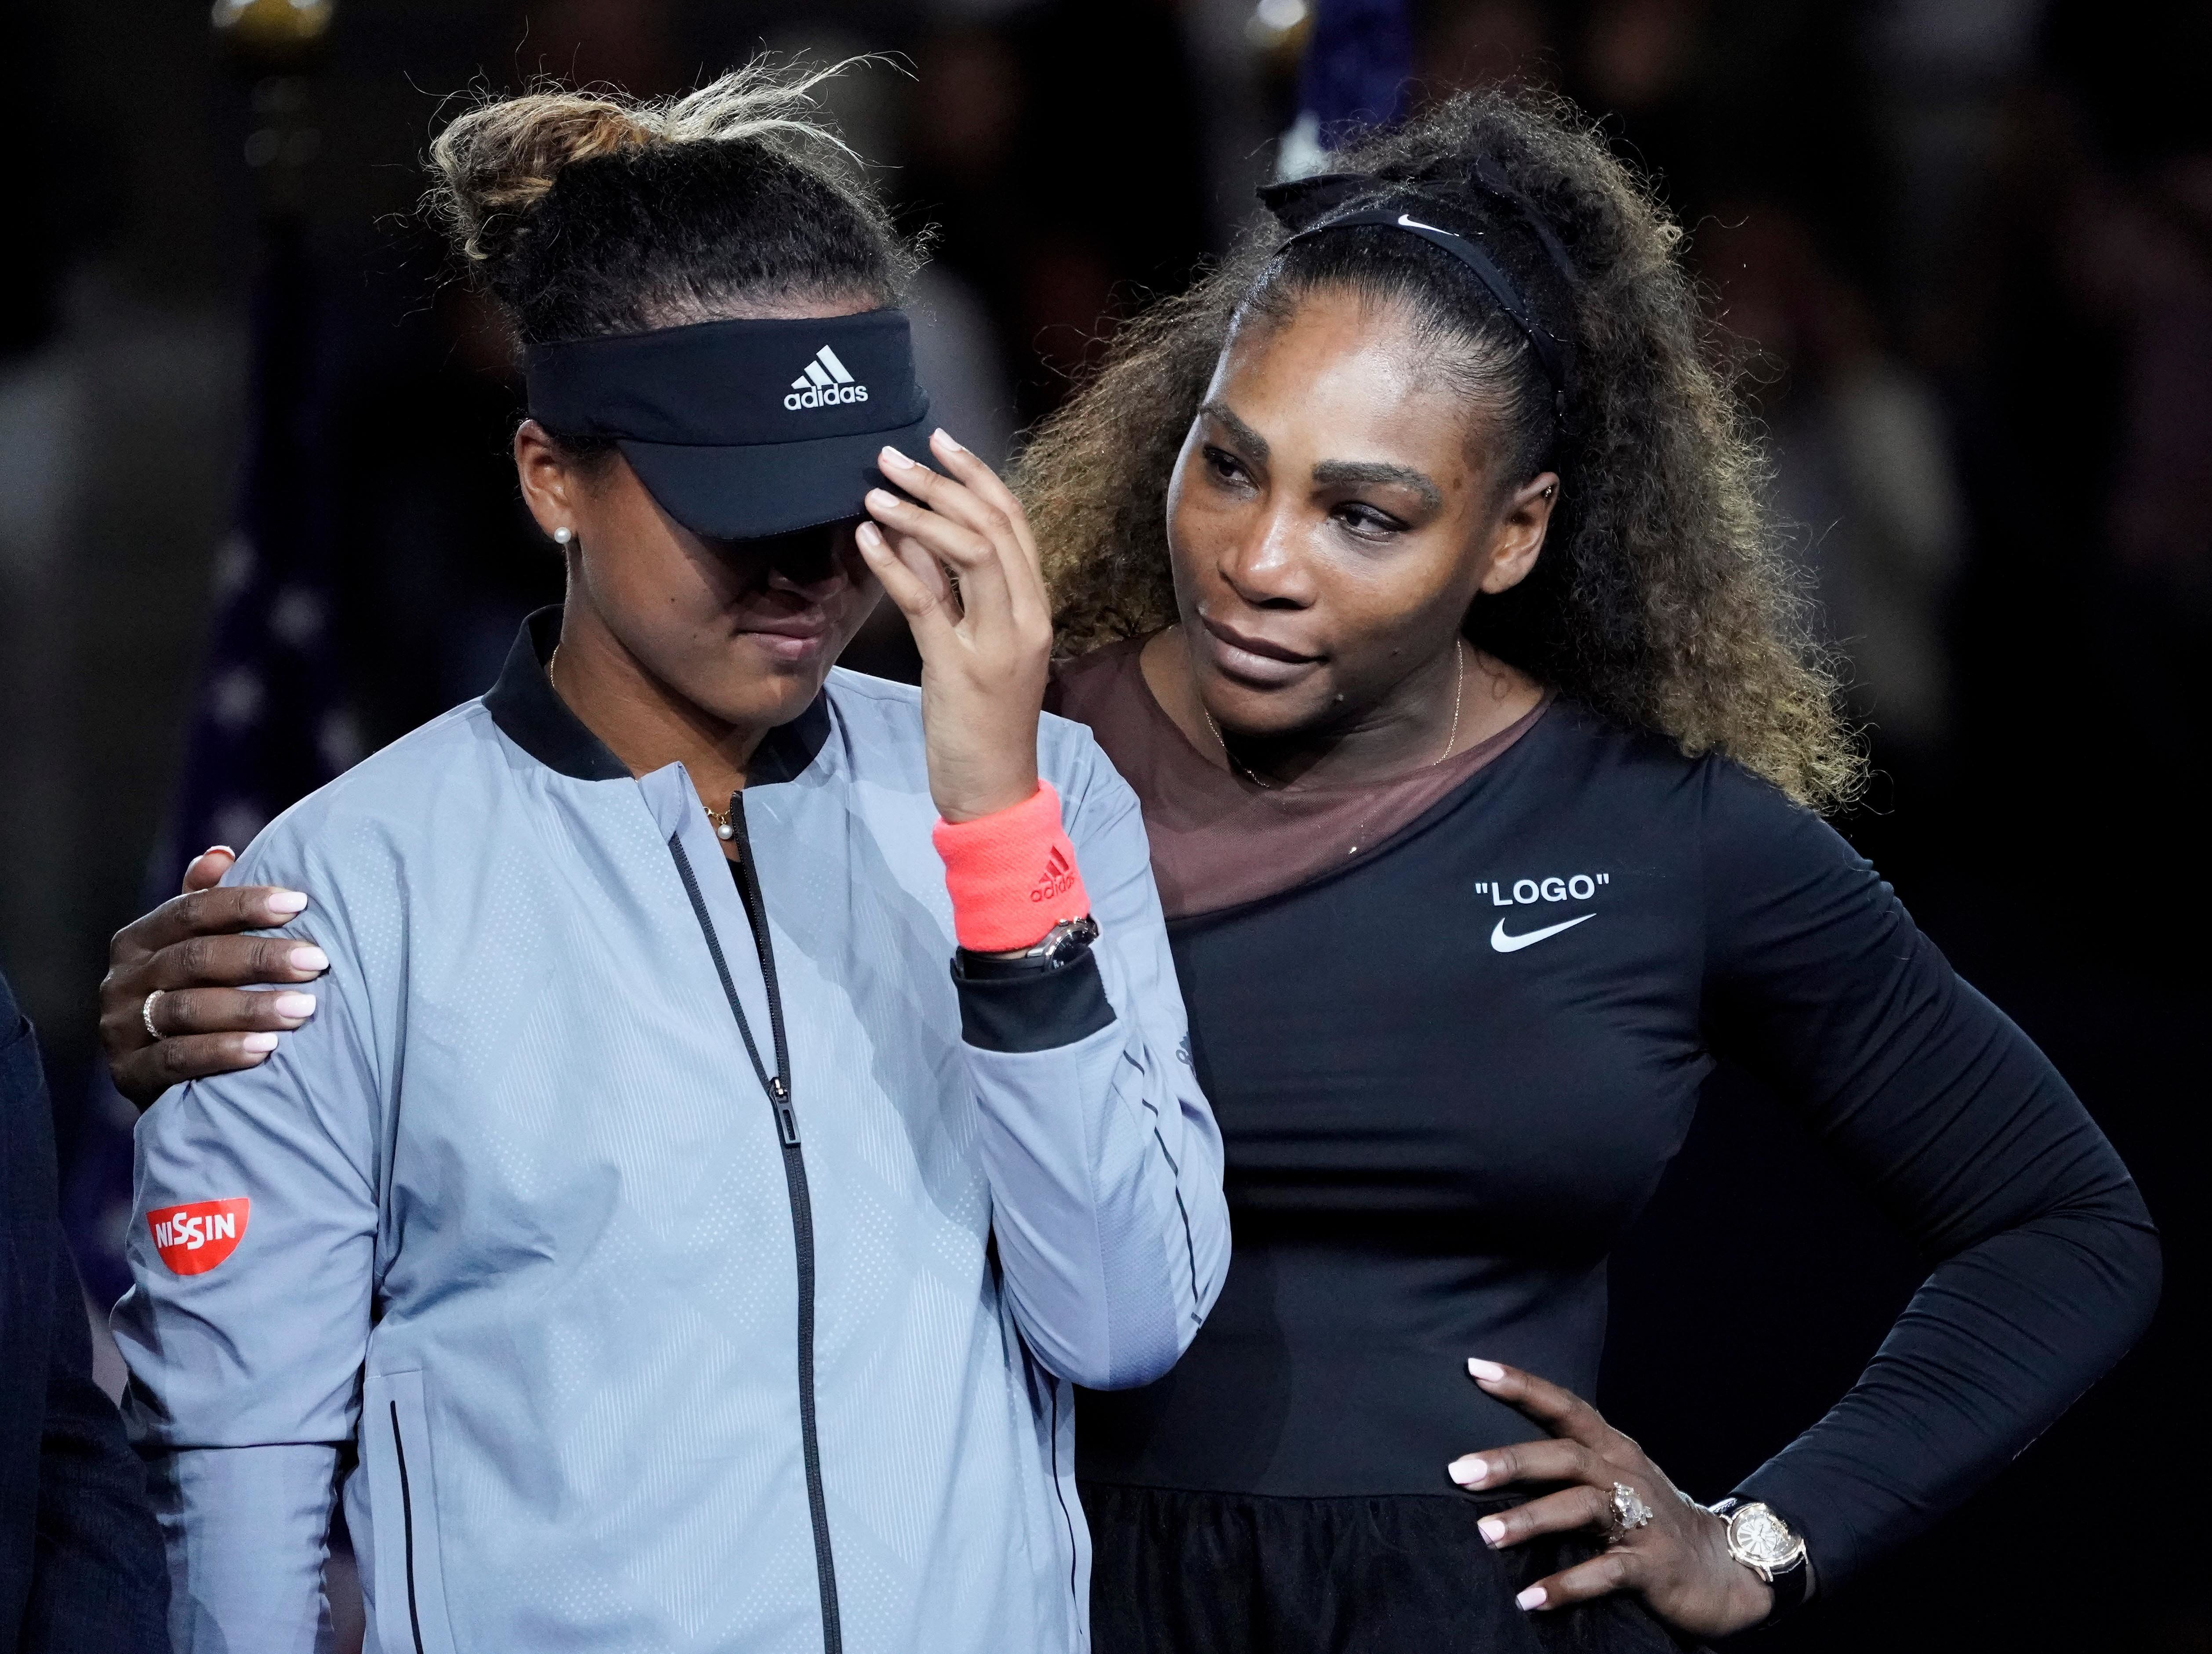 Serena Williams comforts Naomi Osaka after crowd boos